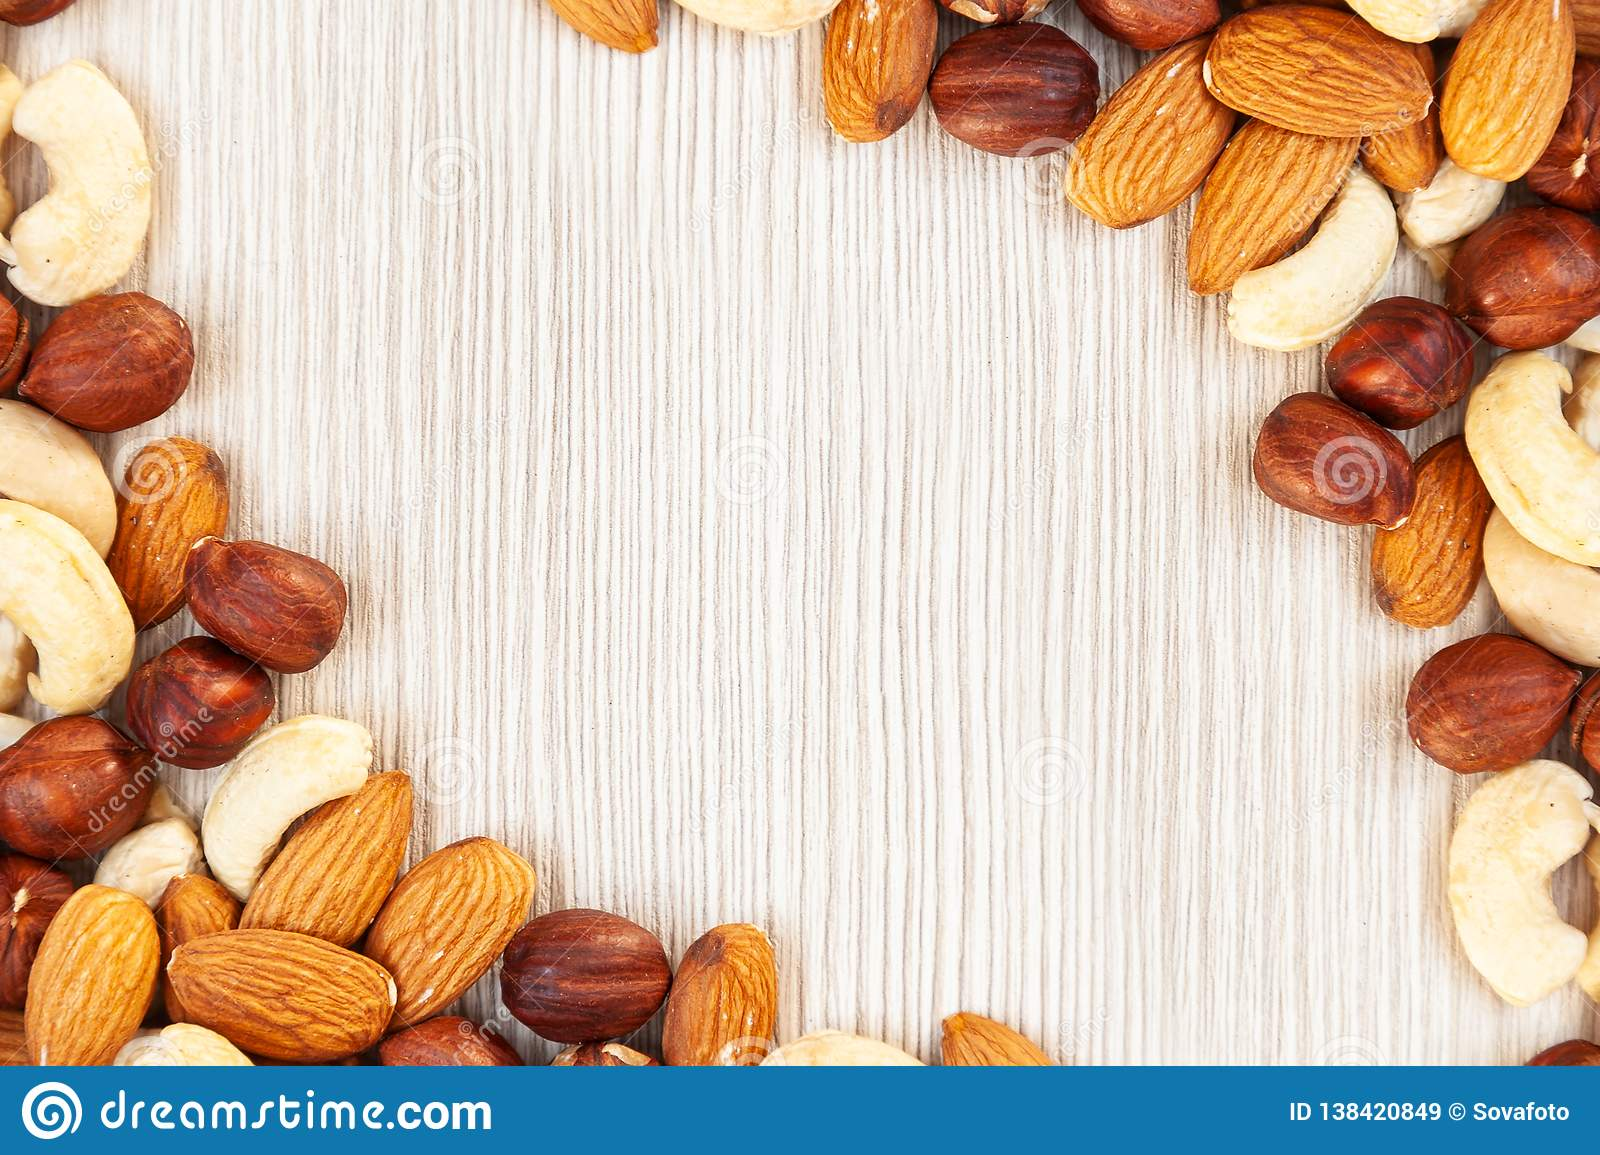 Nuts pattern stock image  Image of nutrition, almonds